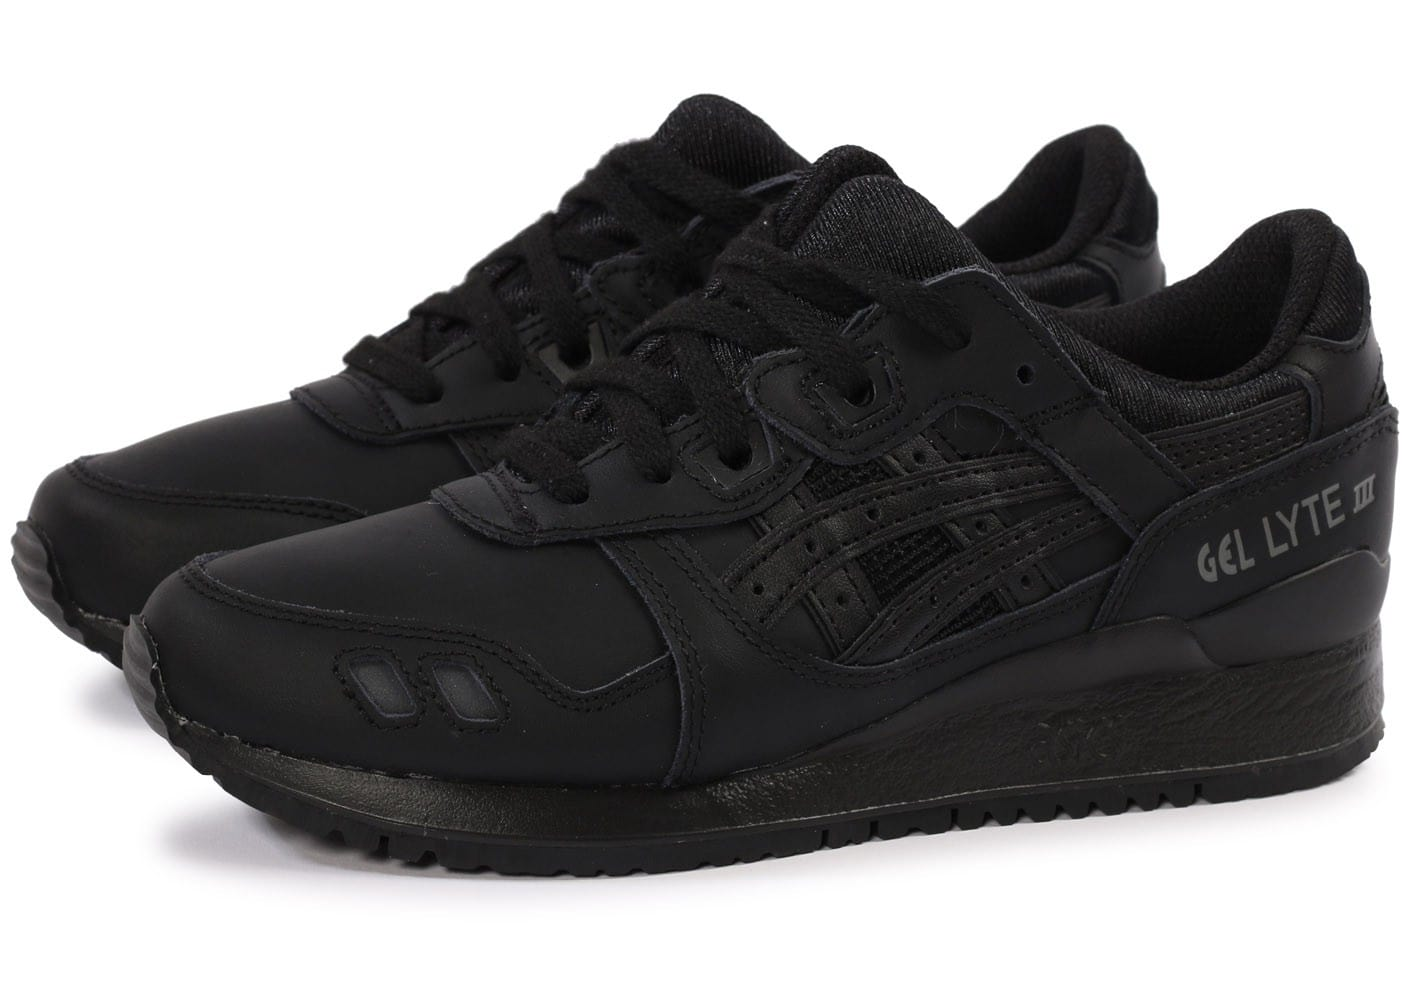 soldes asics gel lyte iii triple noir chaussures toutes les baskets sold es chausport. Black Bedroom Furniture Sets. Home Design Ideas